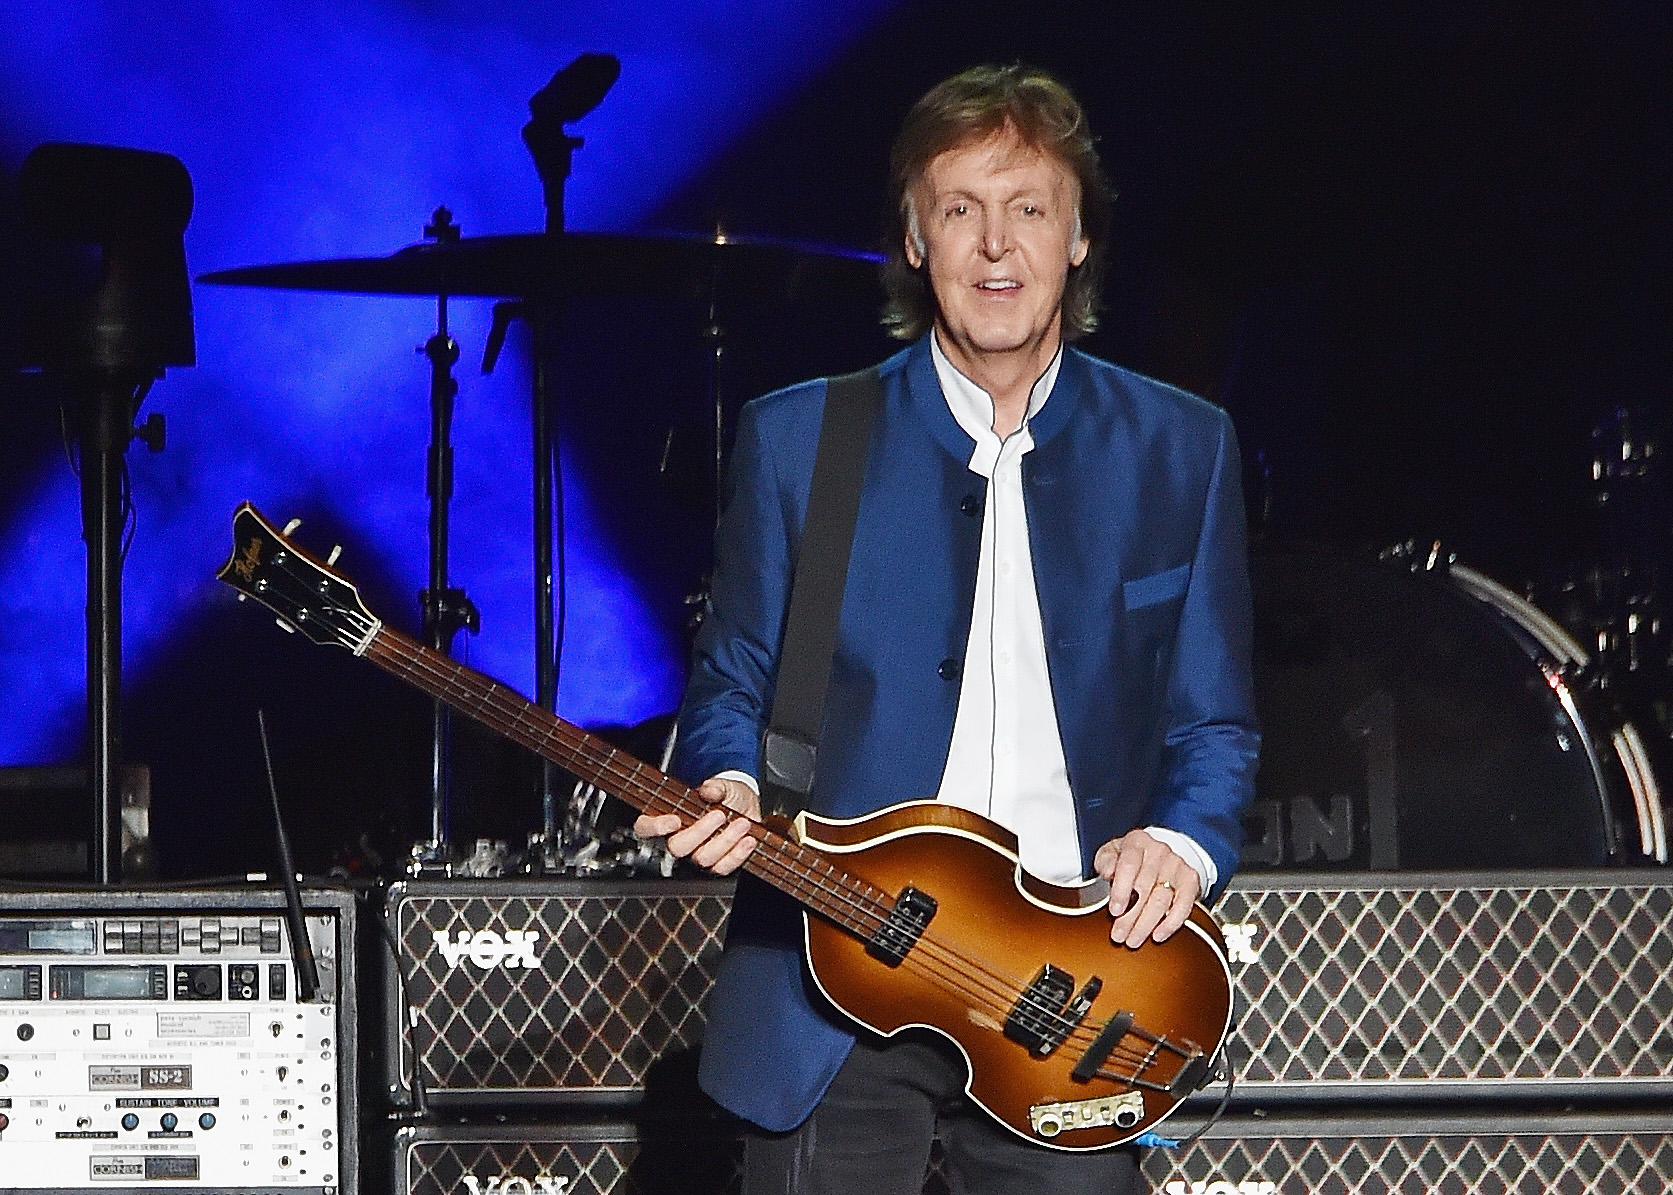 AOTM: Paul McCartney Rocks Out with Dr. Pepper's Jaded Hearts Club Band